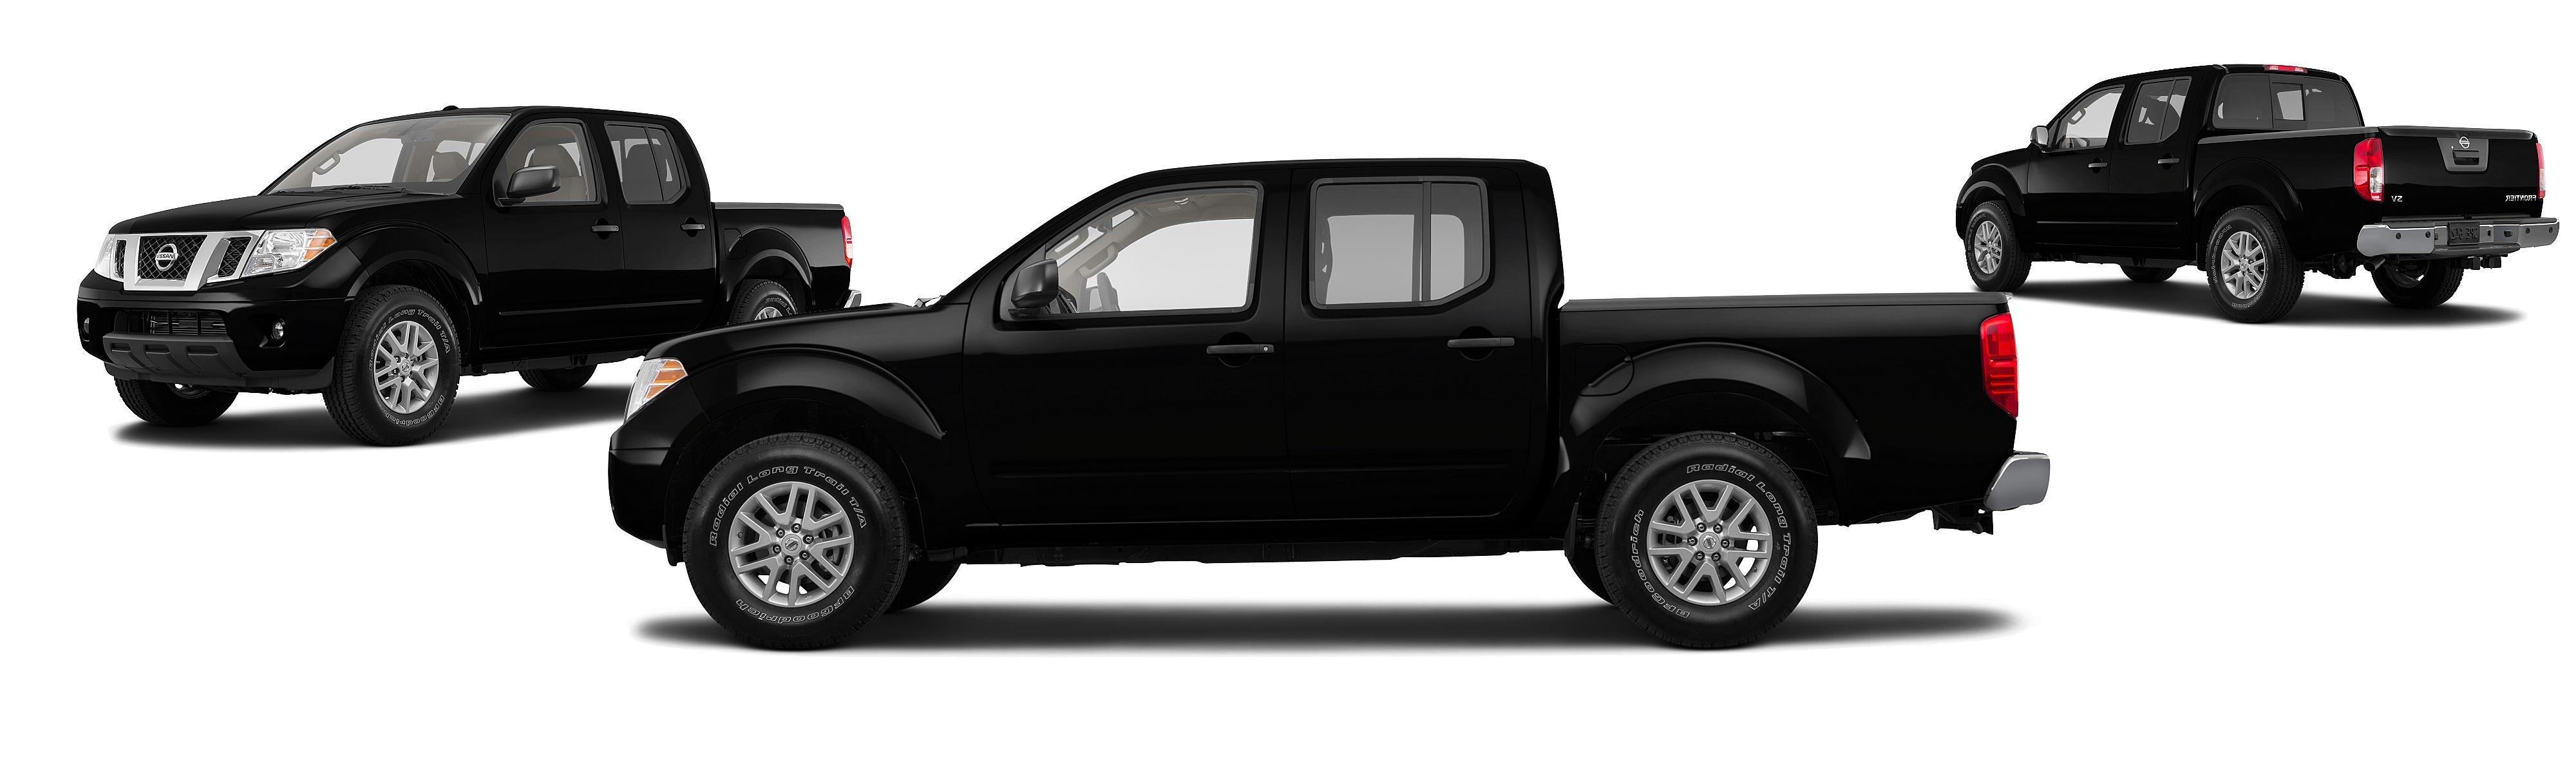 2017 Nissan Frontier 4x4 Sv 4dr Crew Cab 5 Ft Sb 5a Research Groovecar